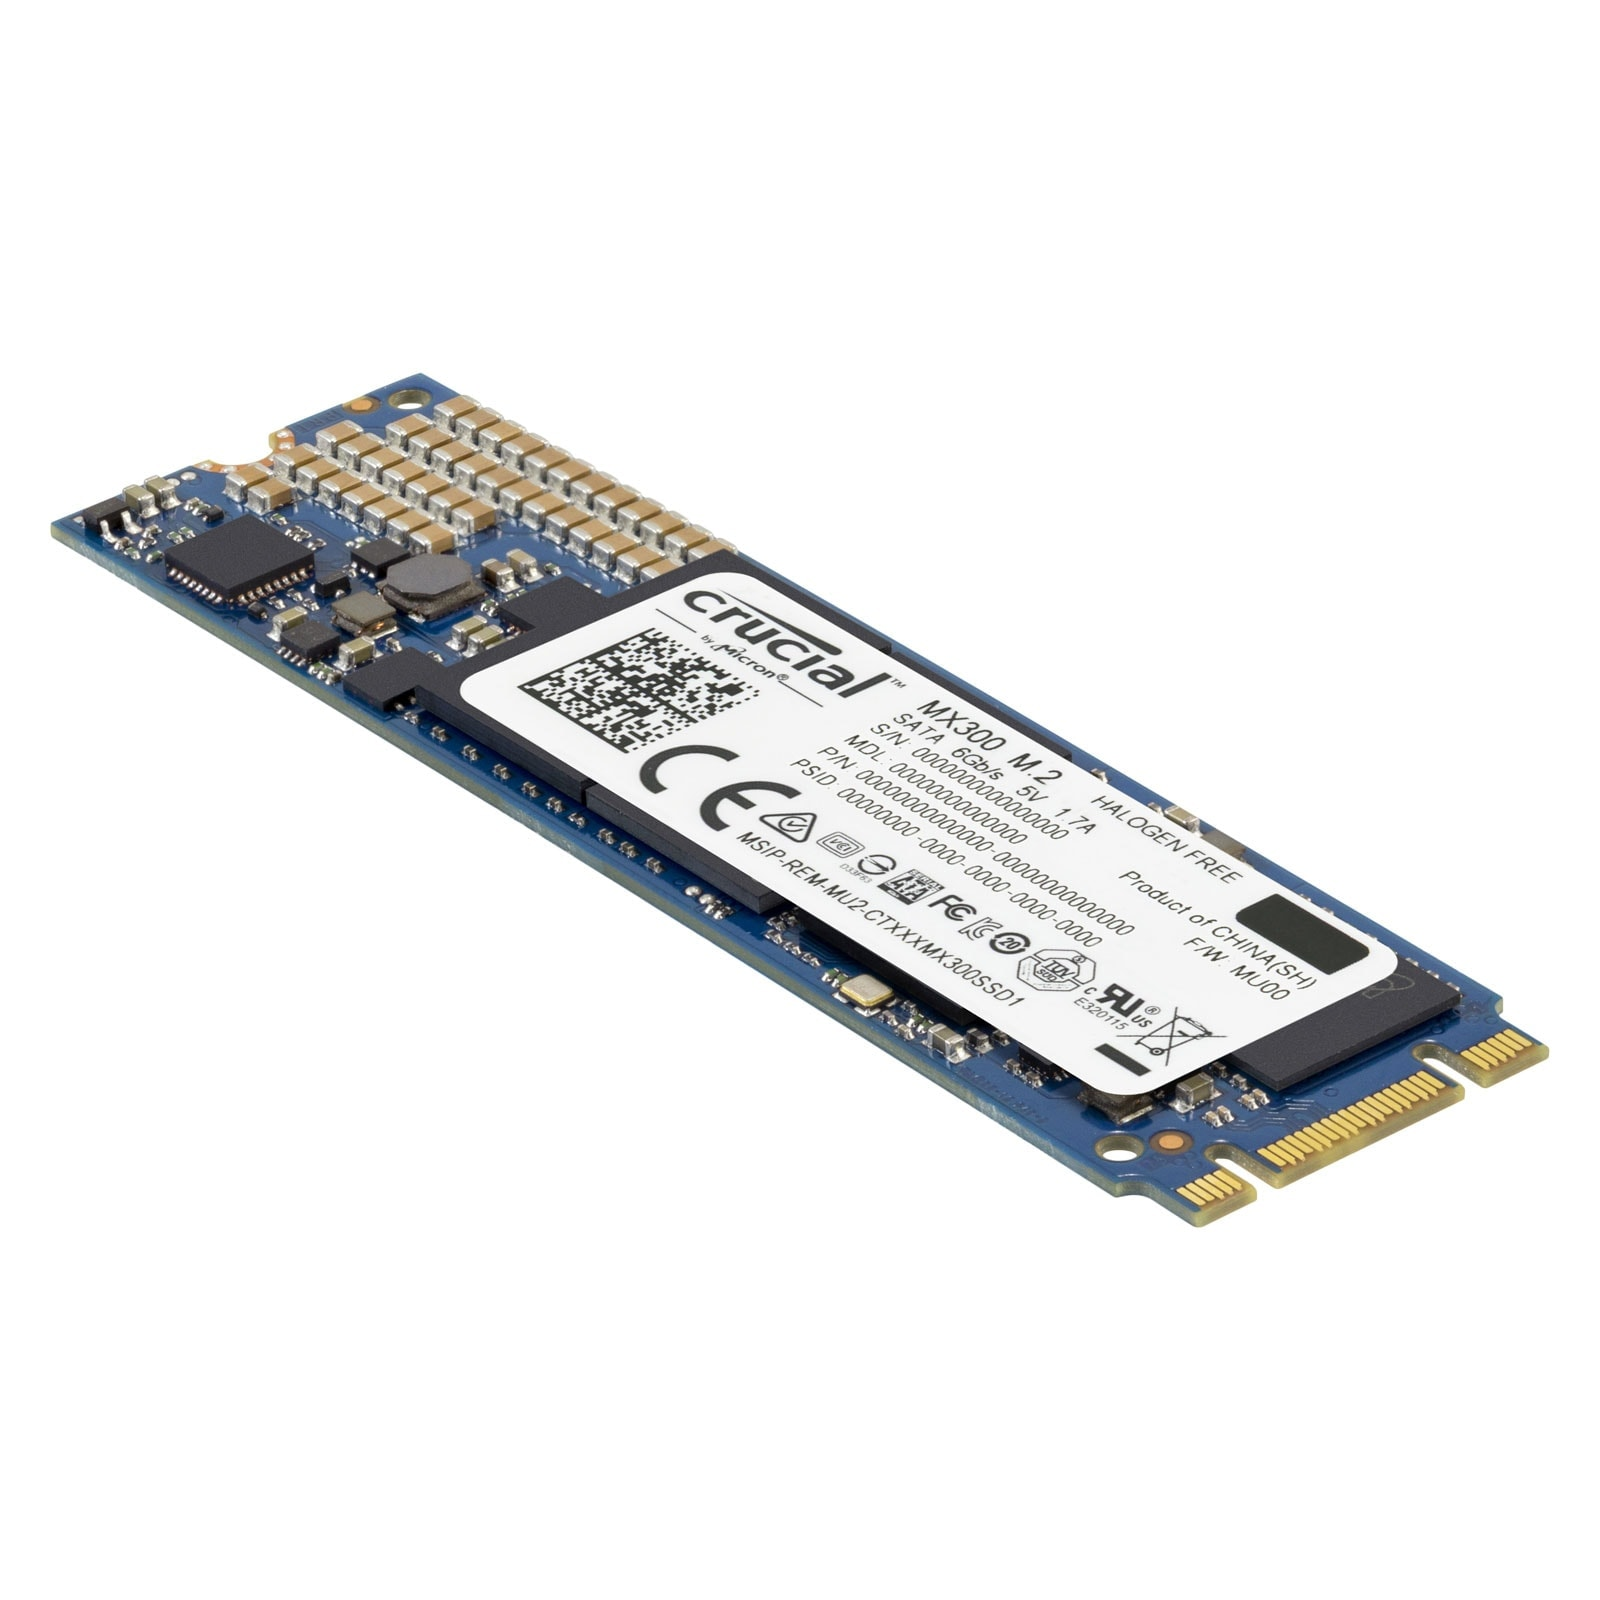 Crucial MX300 960Go-1To - Disque SSD Crucial - Cybertek.fr - 0